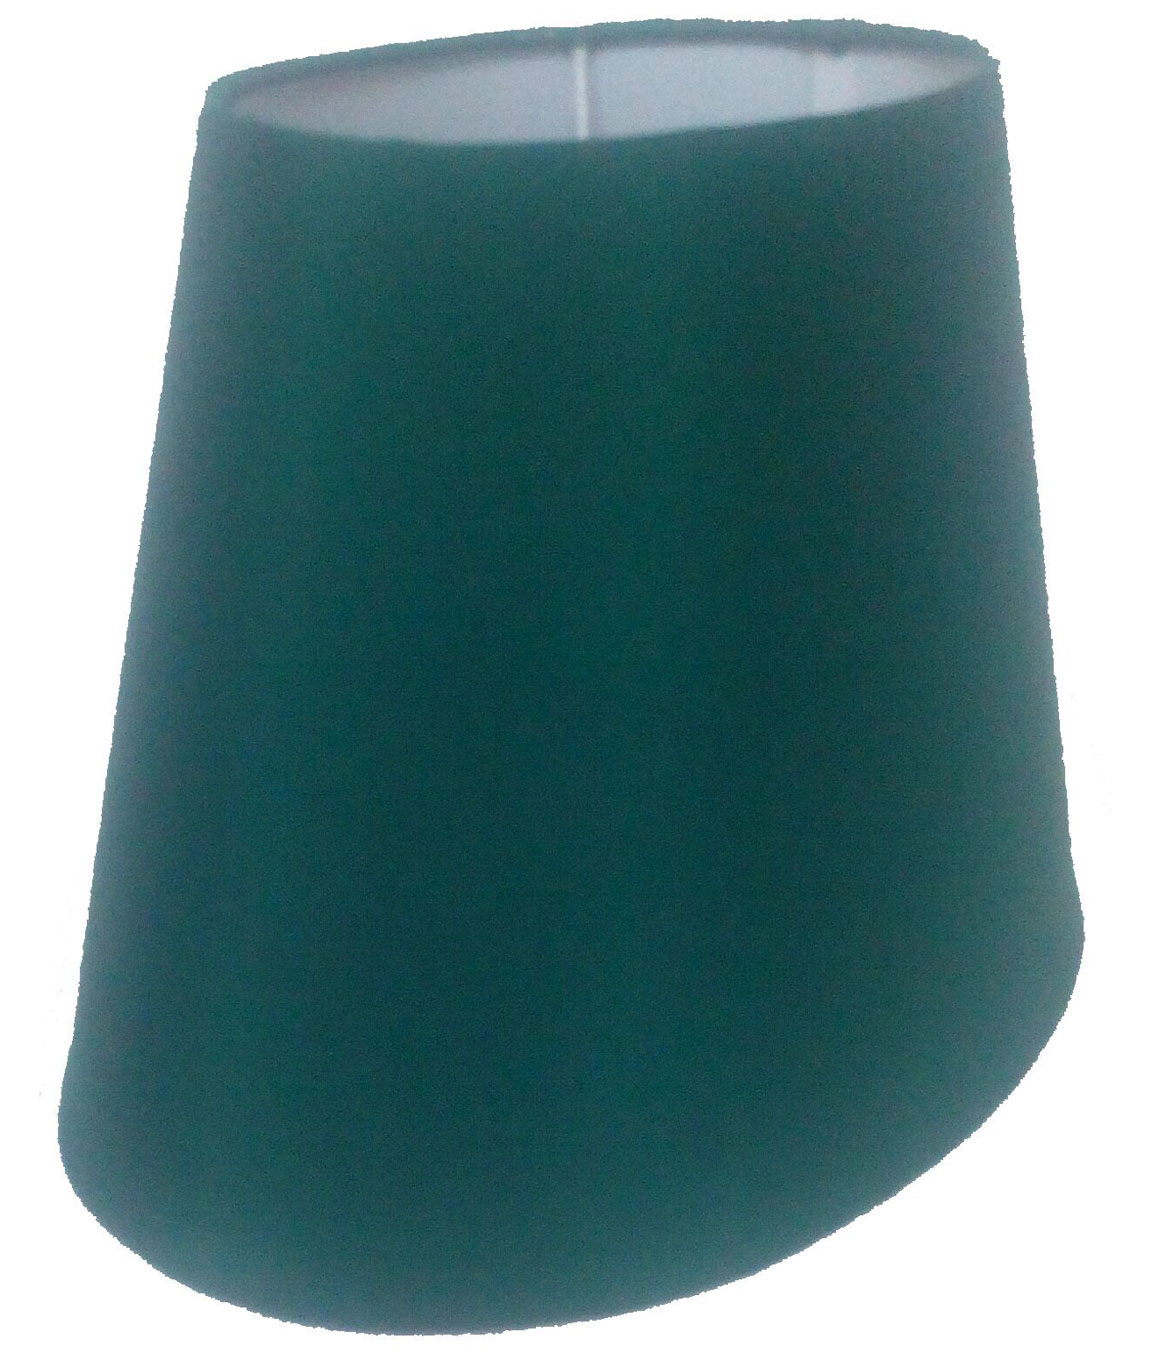 RDC 10 Inches Oval Plain Green Lamp Shade for Table Lamp